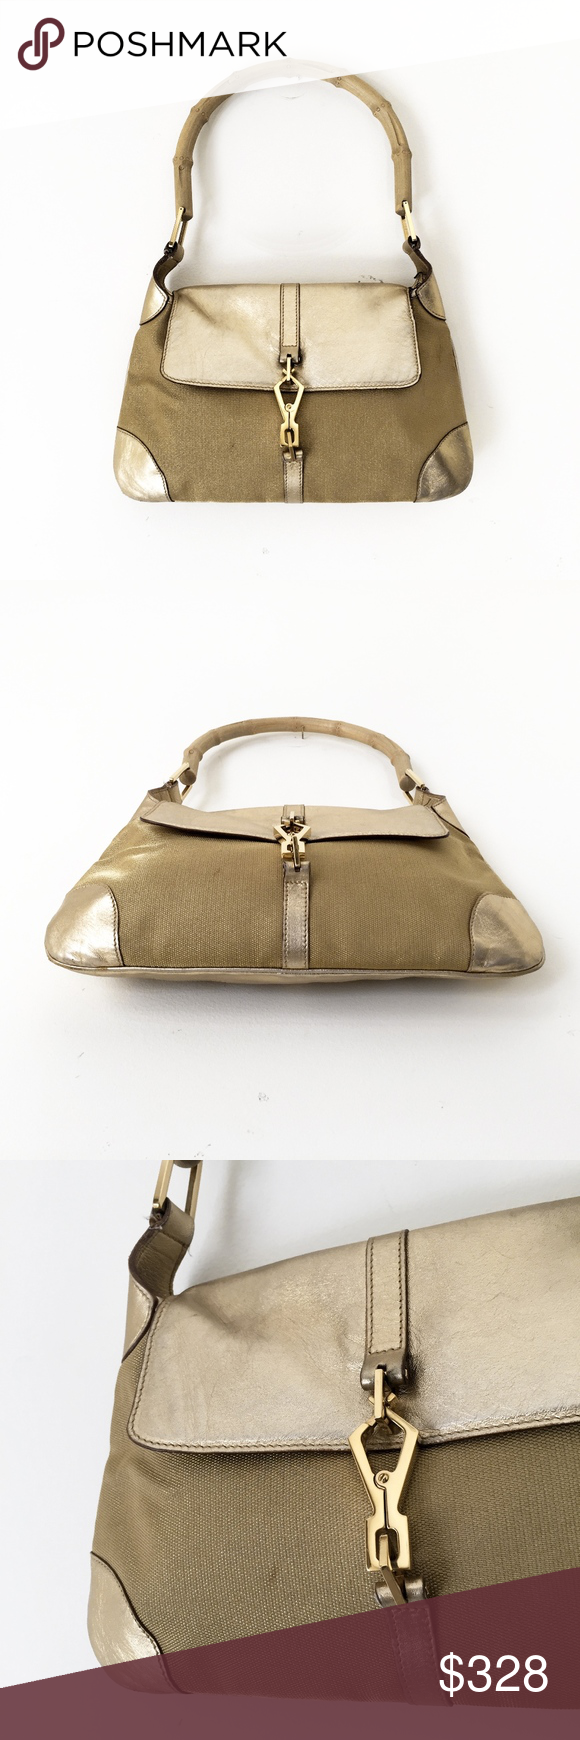 c04d778c307 GUCCI Jackie O vintage bamboo shoulder clutch bag GUCCI 001 4096 1669 made  in Italy authentic. Visit. March 2019